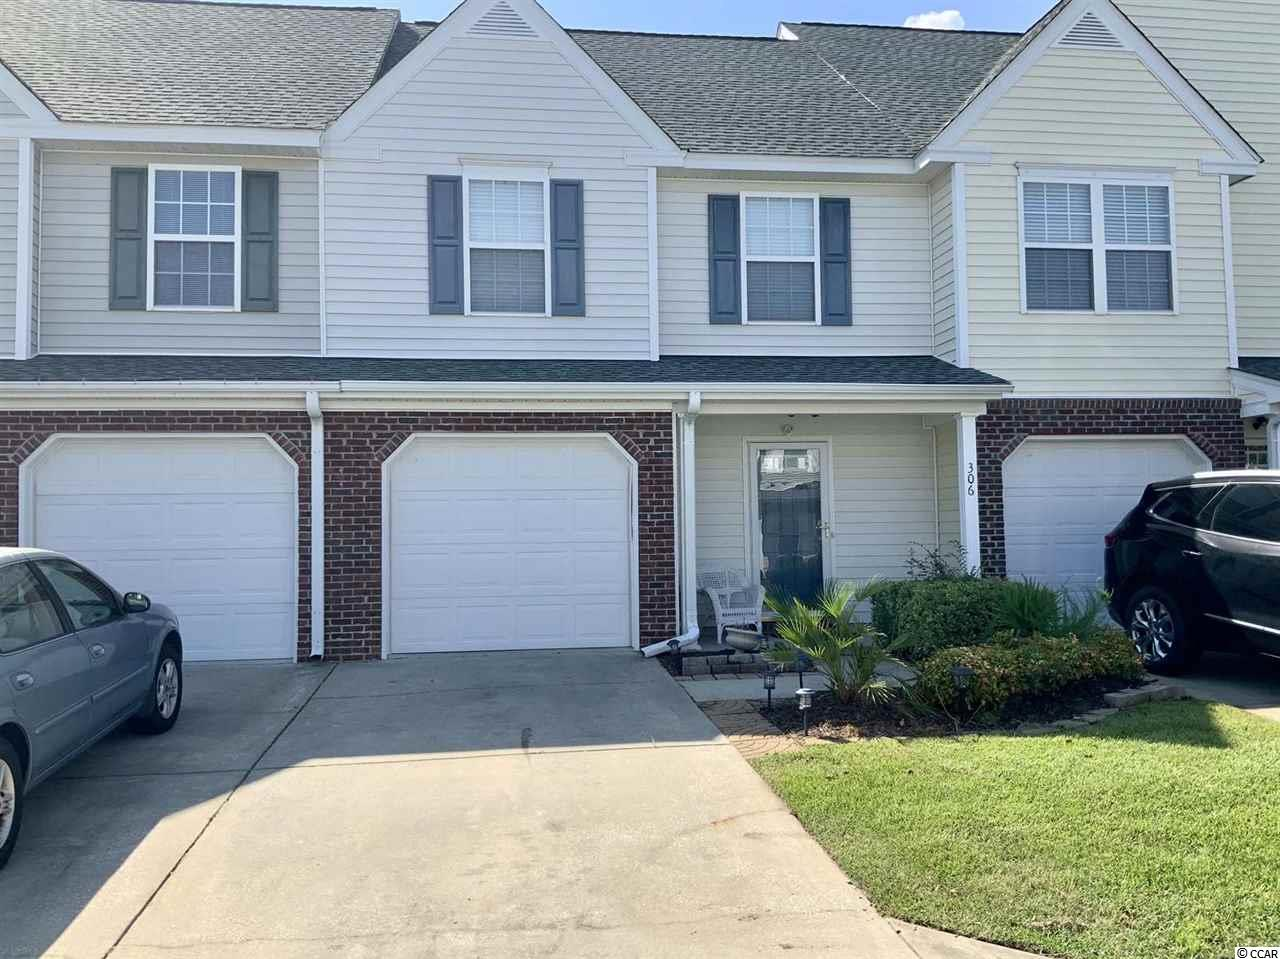 Welcome home to this beautiful 2 bed/ 2.5 bath townhome located in the heart of Murrell's Inlet in The Wynbrook community. You have everything you could possibly need with this purchase including upgraded flooring in the foyer area and upstairs. Enjoy the open layout from the kitchen area to the living area. Plenty of space for friends and family to enjoy time together. Venture upstairs to find your living area where you have beautiful views from your master and guest bedroom. Wynbrook is in Murrell's Inlet where you have fishing, restaurants, shopping and all the entertainment one could desire. Schedule your showing today!